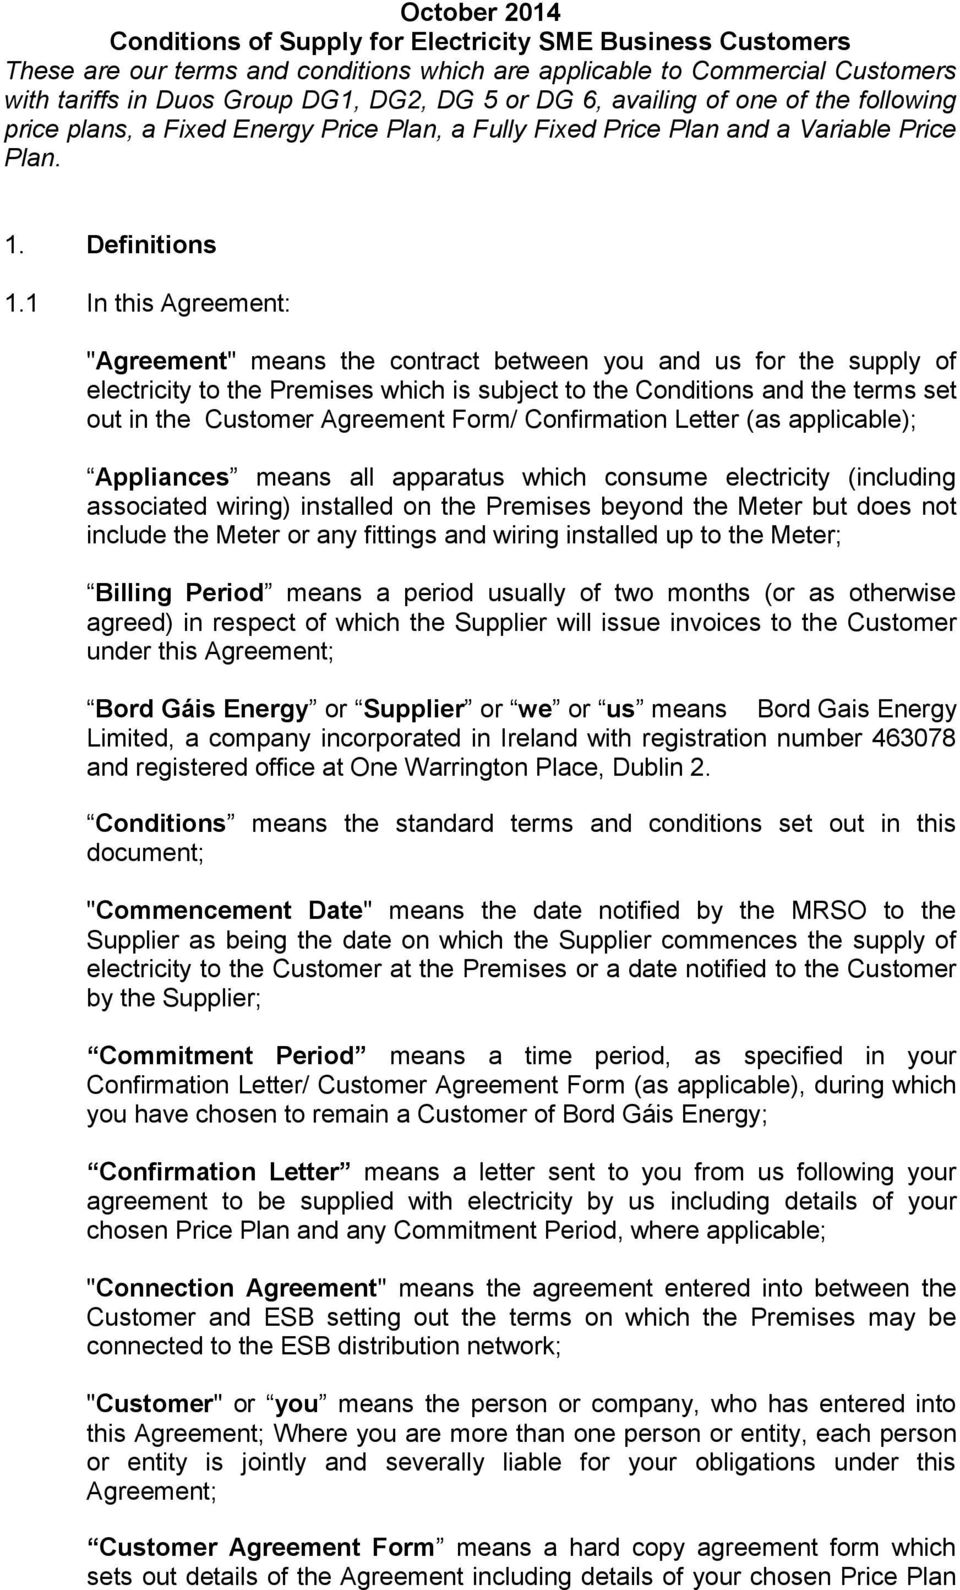 Customer Agreement Form means a hard copy agreement form which sets